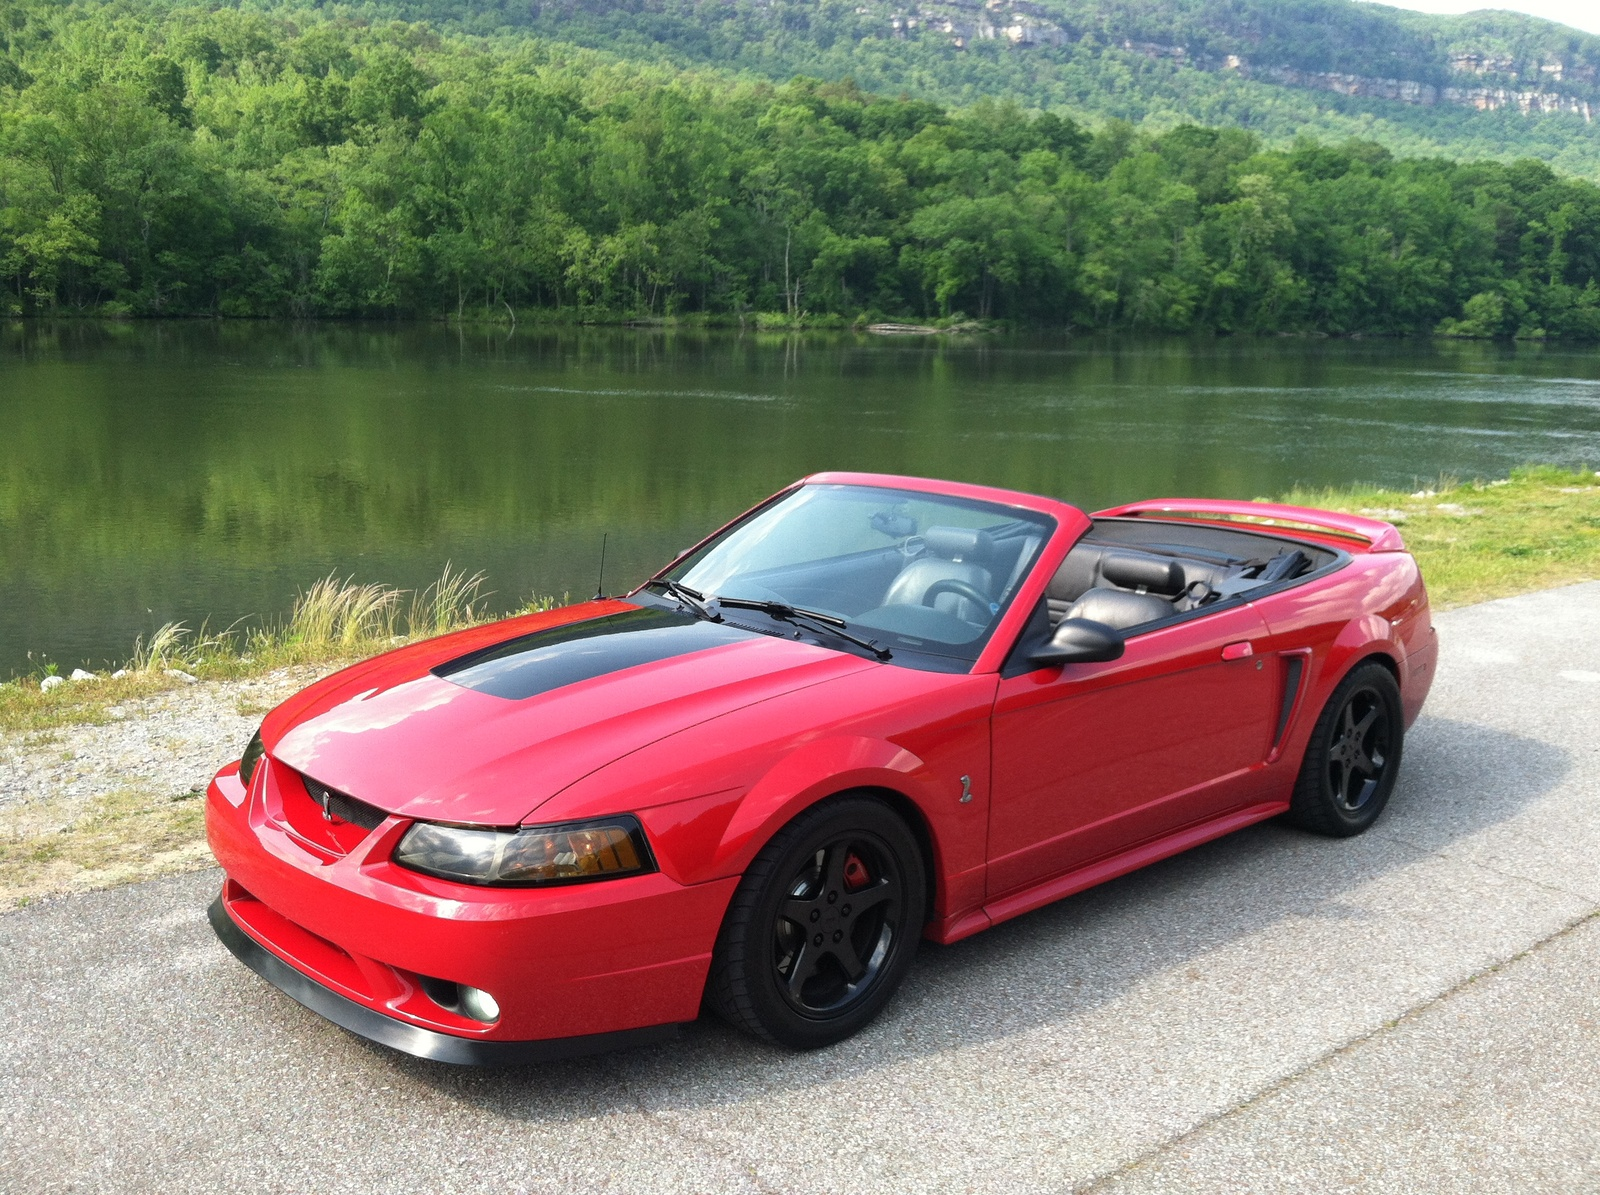 Picture of 1999 ford mustang svt cobra 2 dr std convertible exterior